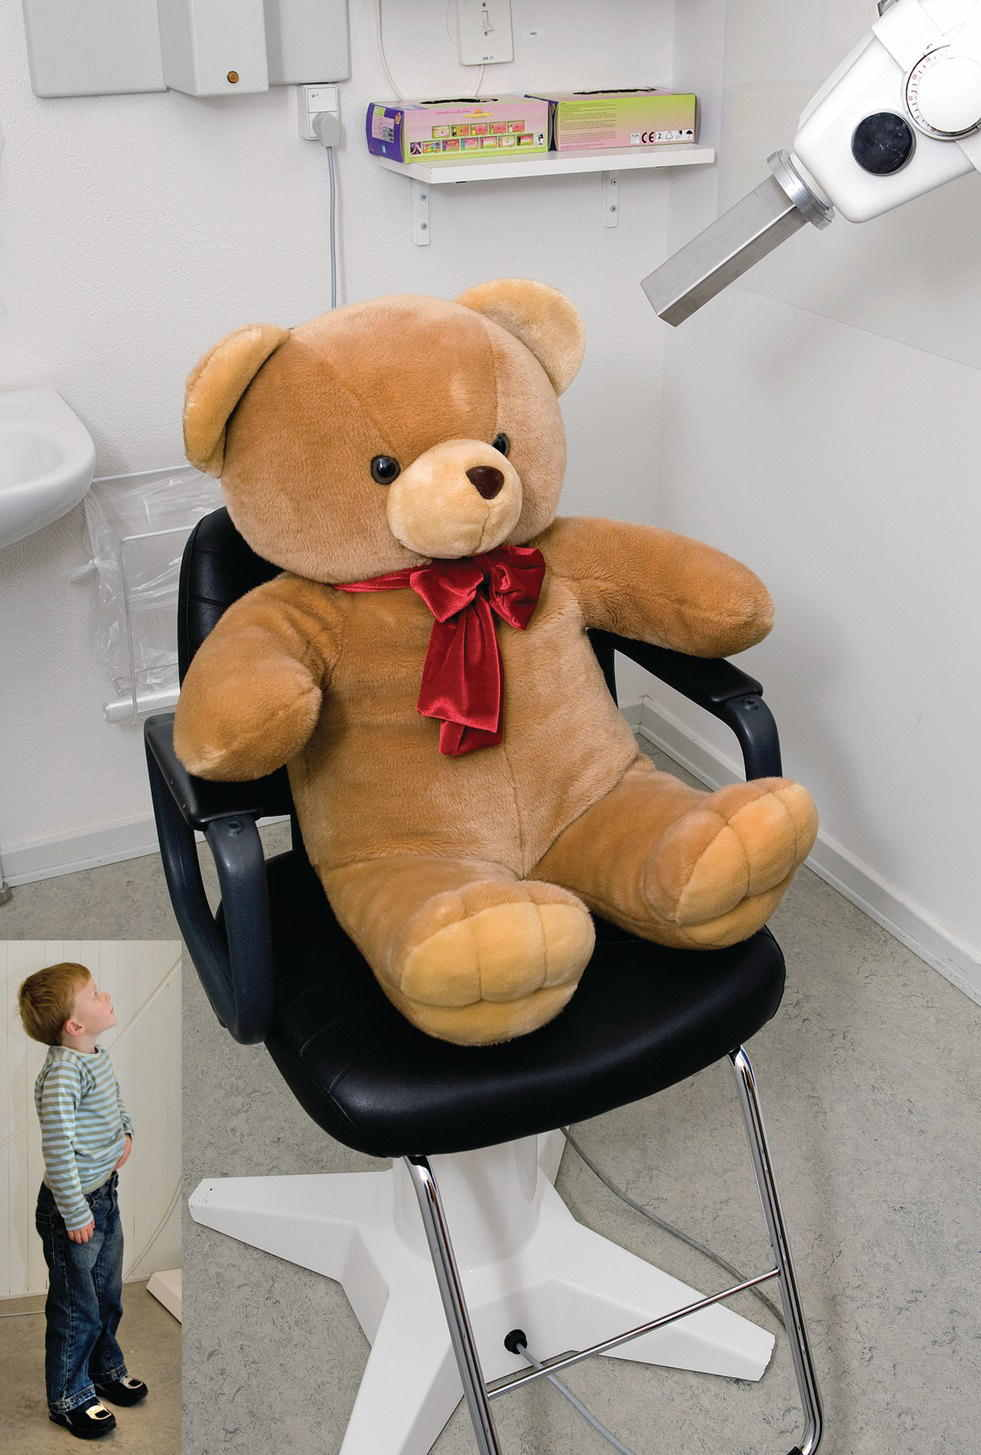 Photo displaying a teddy bear place on a chair, facing the head tube of the dental X-ray. Inset: Photo of a child looking up.